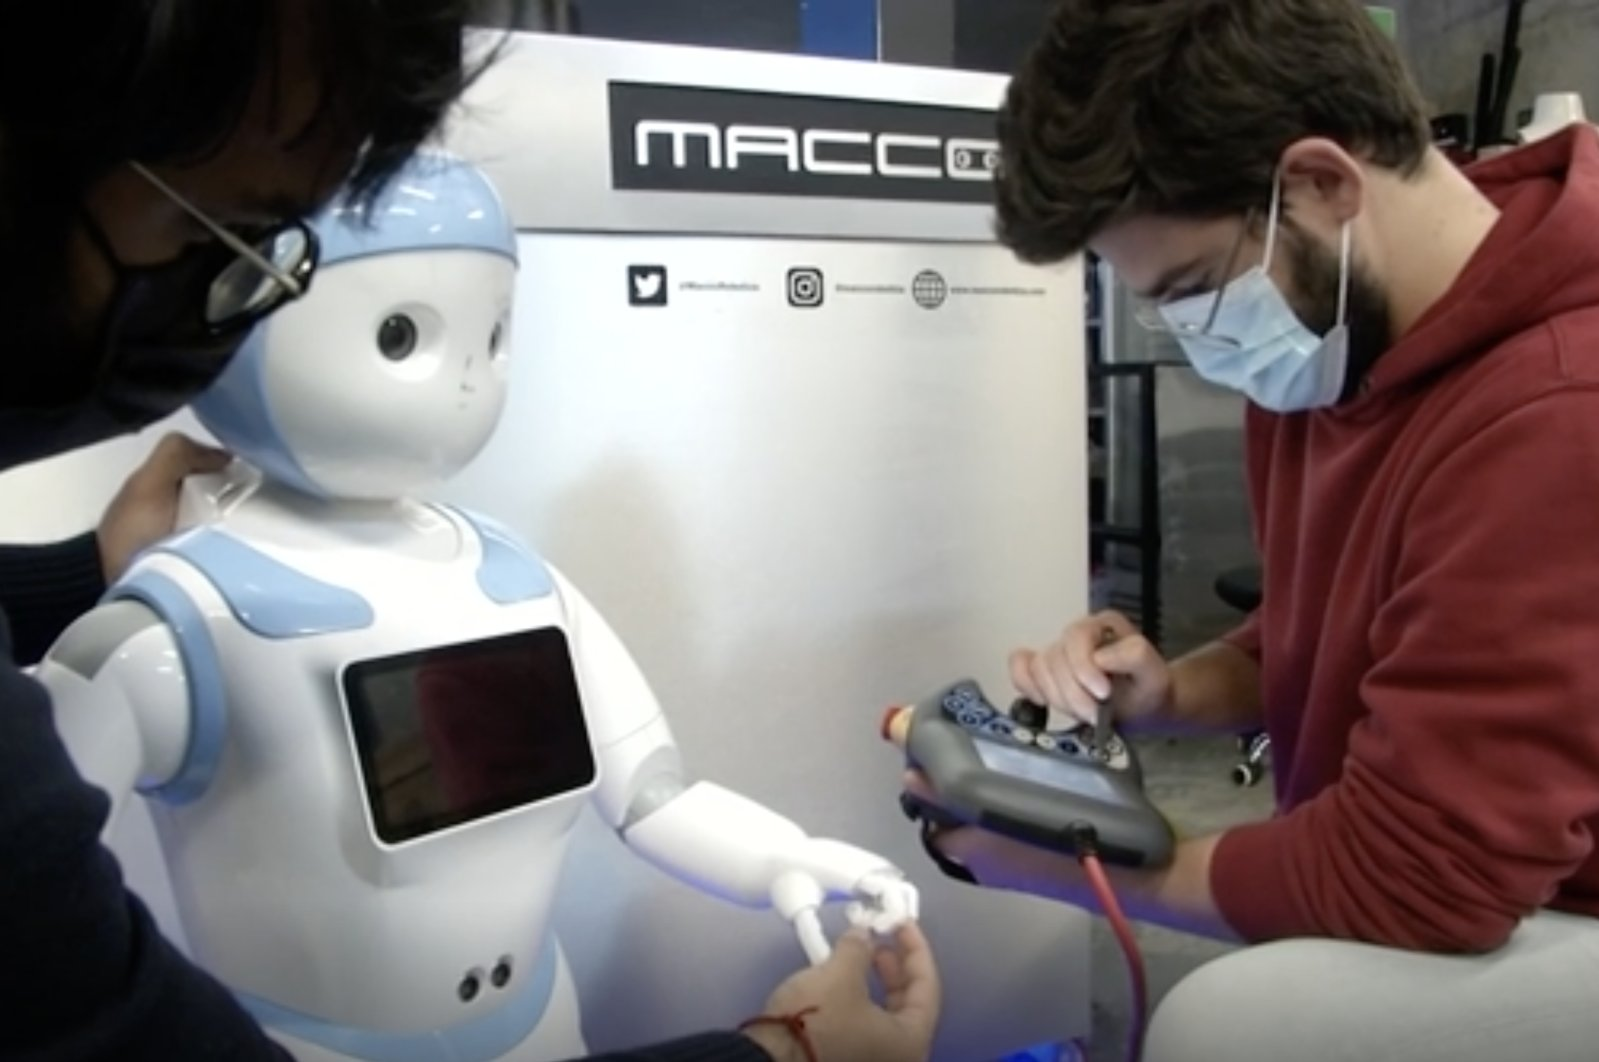 A still image from a video shows Kishhanth Renganathan, Chief Technology Officer (CTO) of Macco Robotics, and another engineer working on a human-like robot in a workshop, Seville, Spain. (AP Photo)